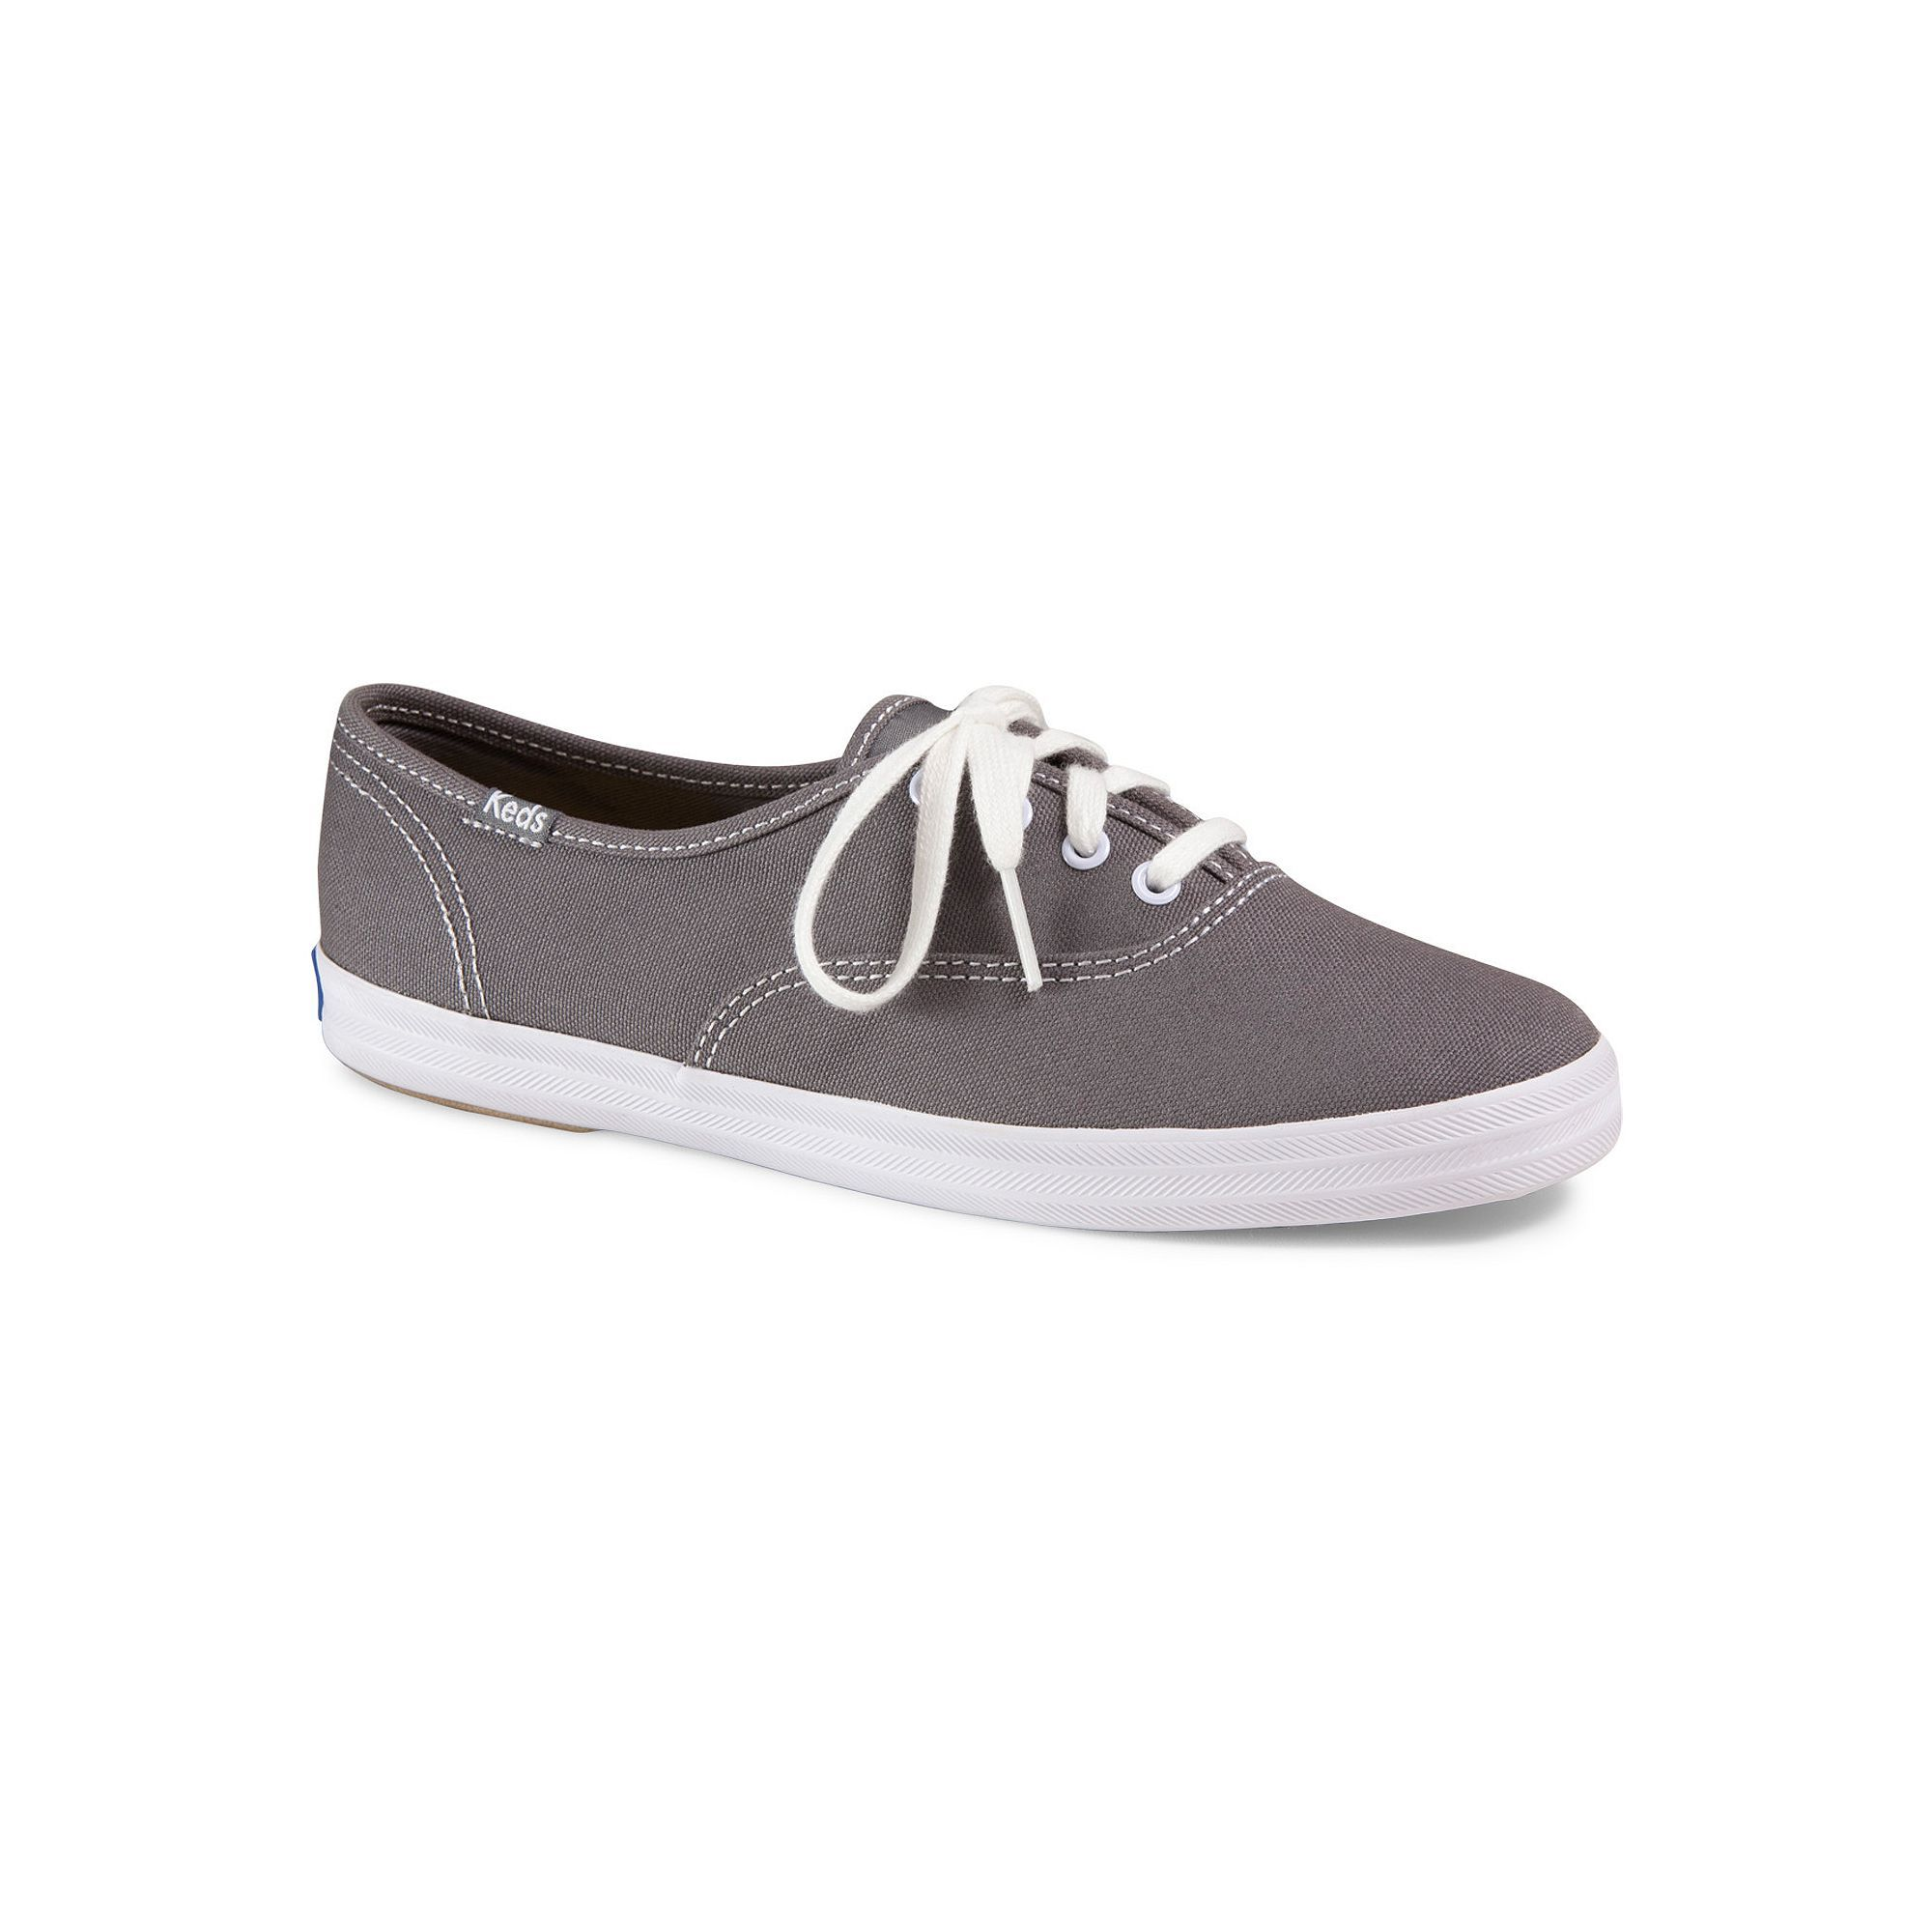 bee33e49eadef Keds Champion Women s Oxford Shoes